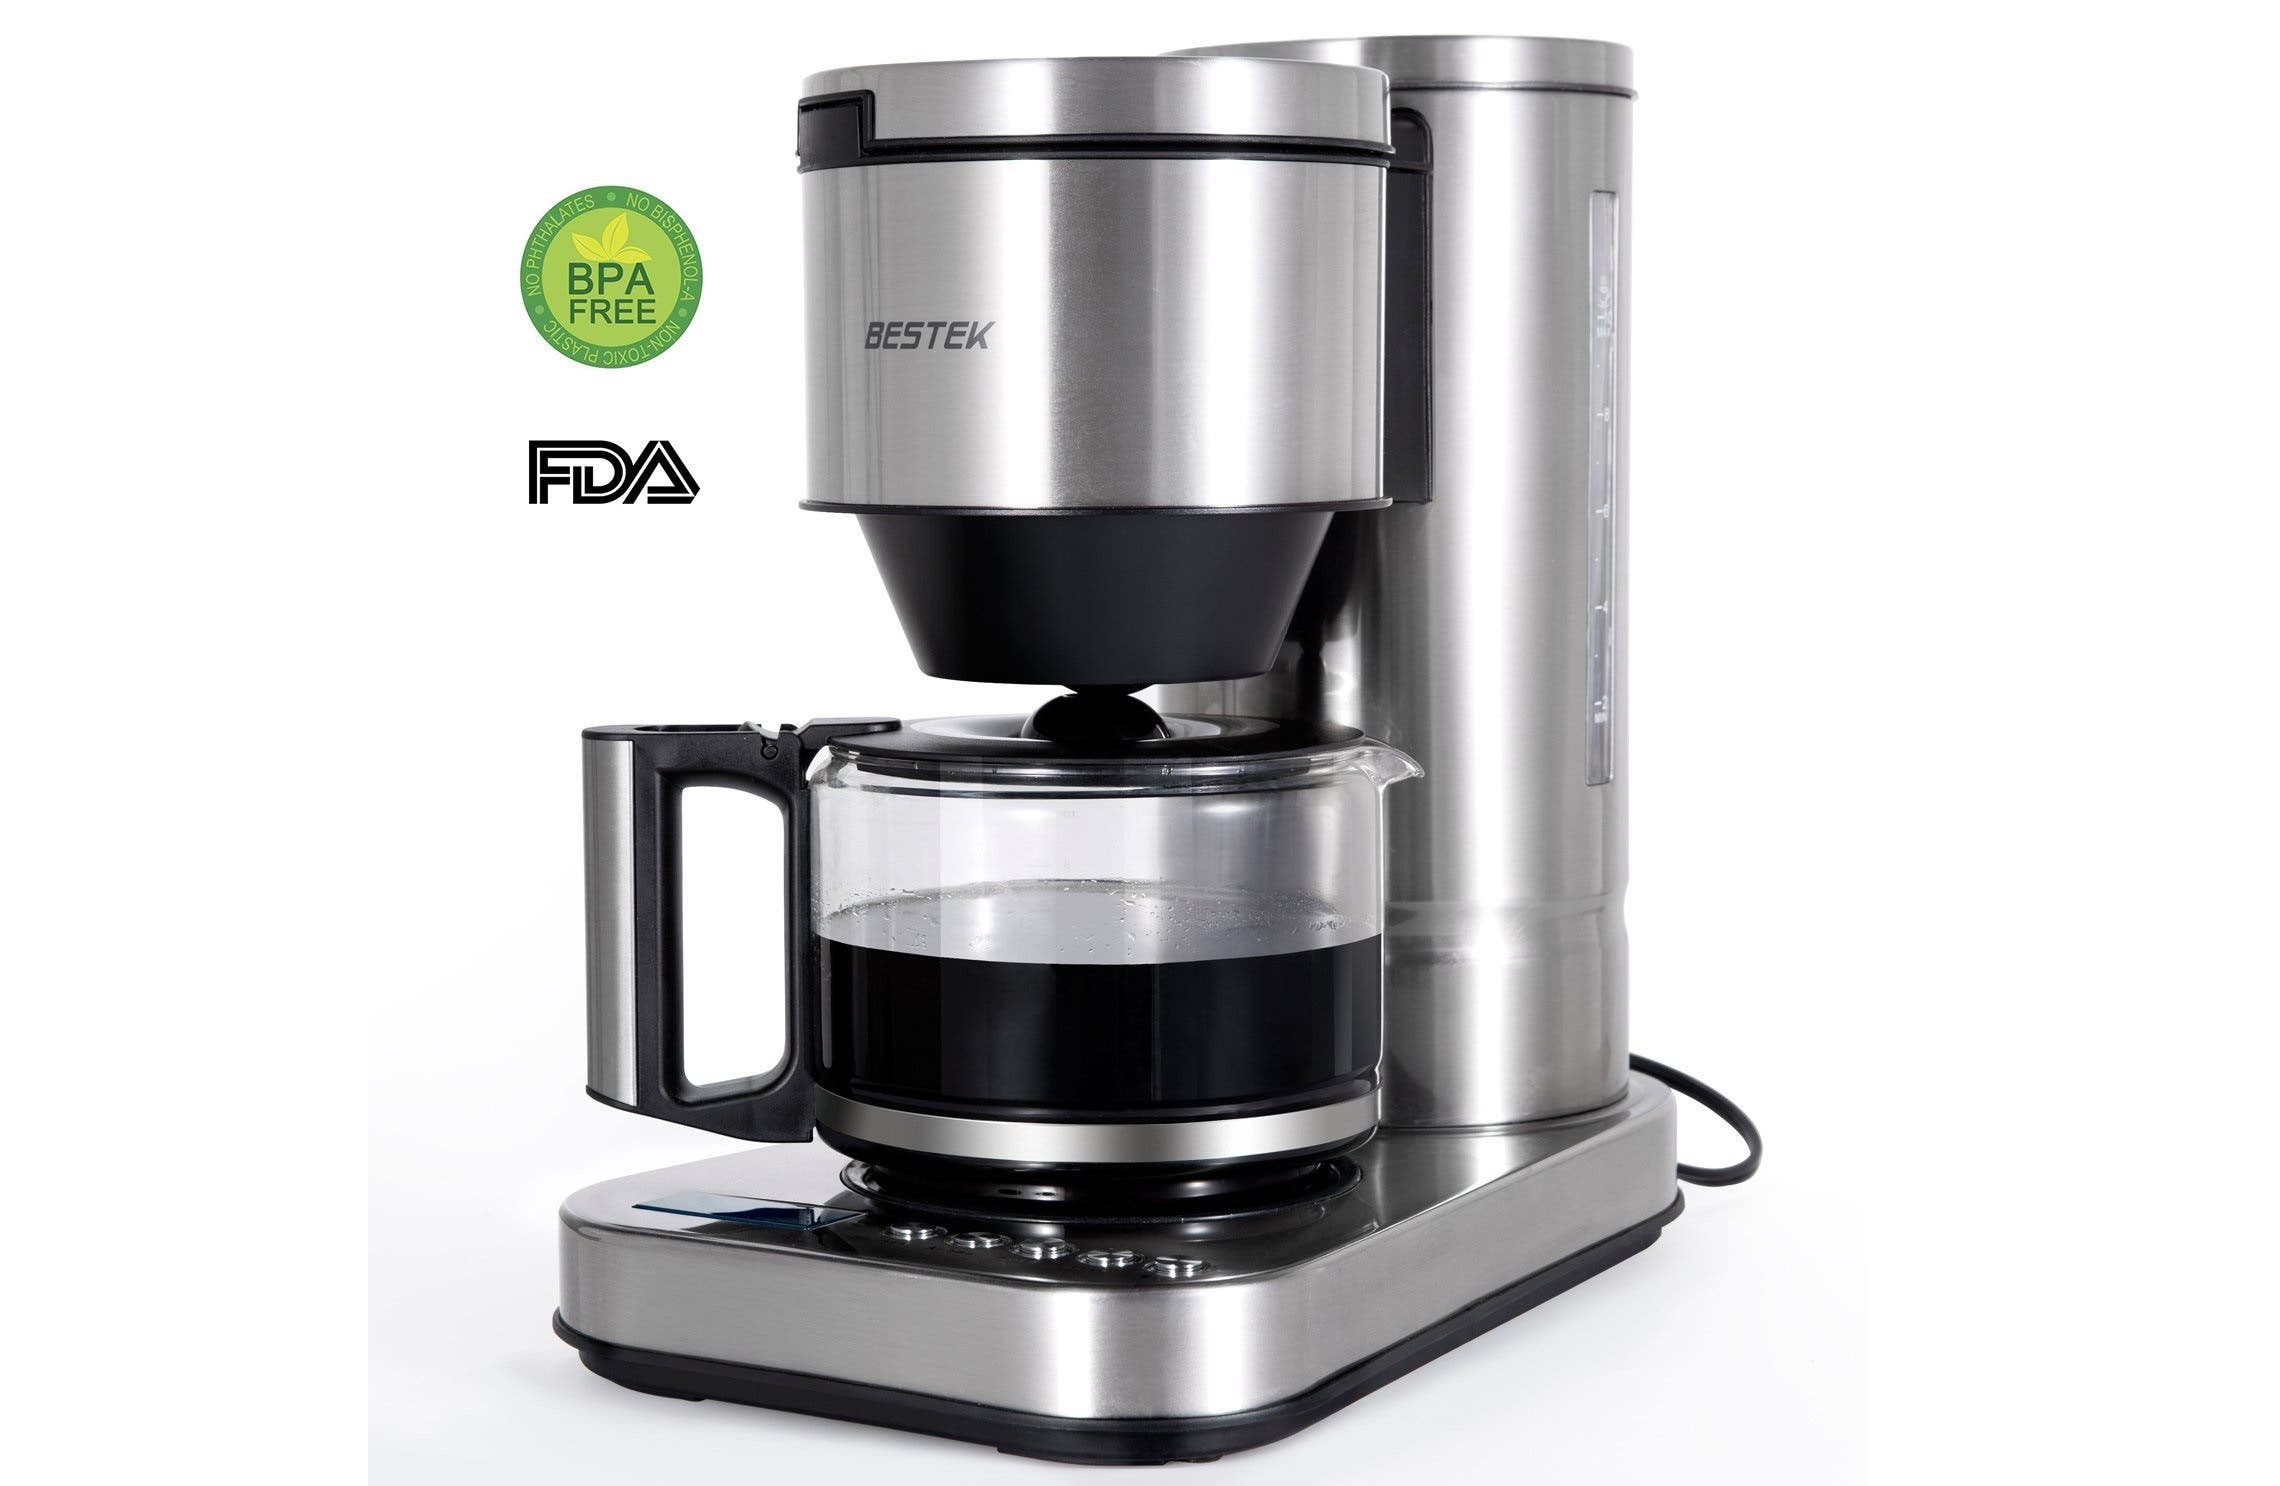 BESTEK 10-cup Coffee Maker